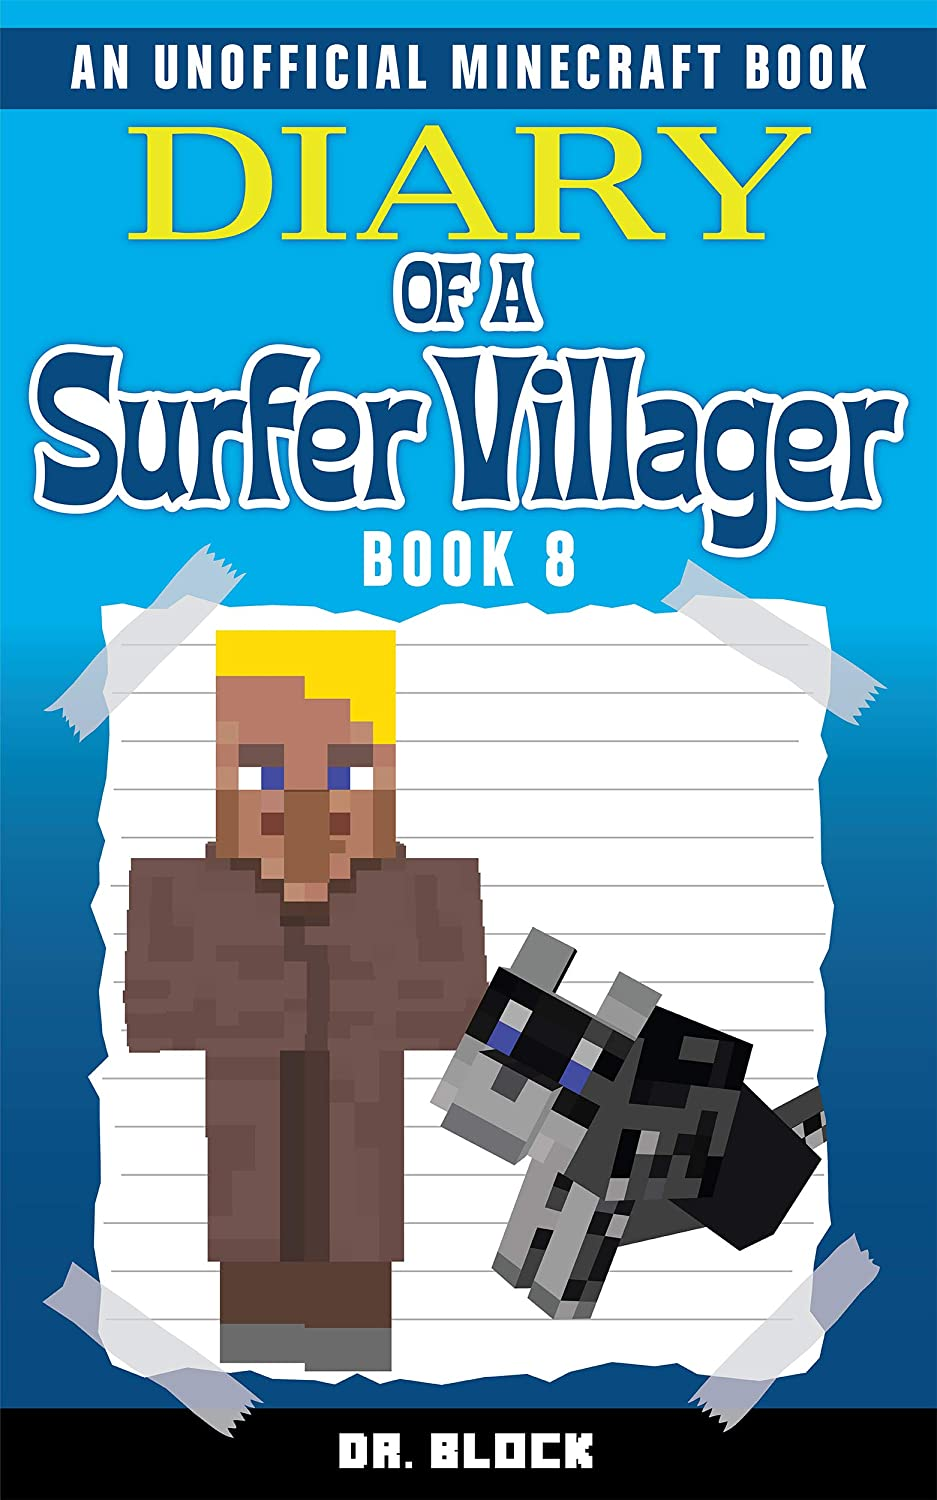 Diary of a Surfer Villager: Book 8: (an unofficial Minecraft ...